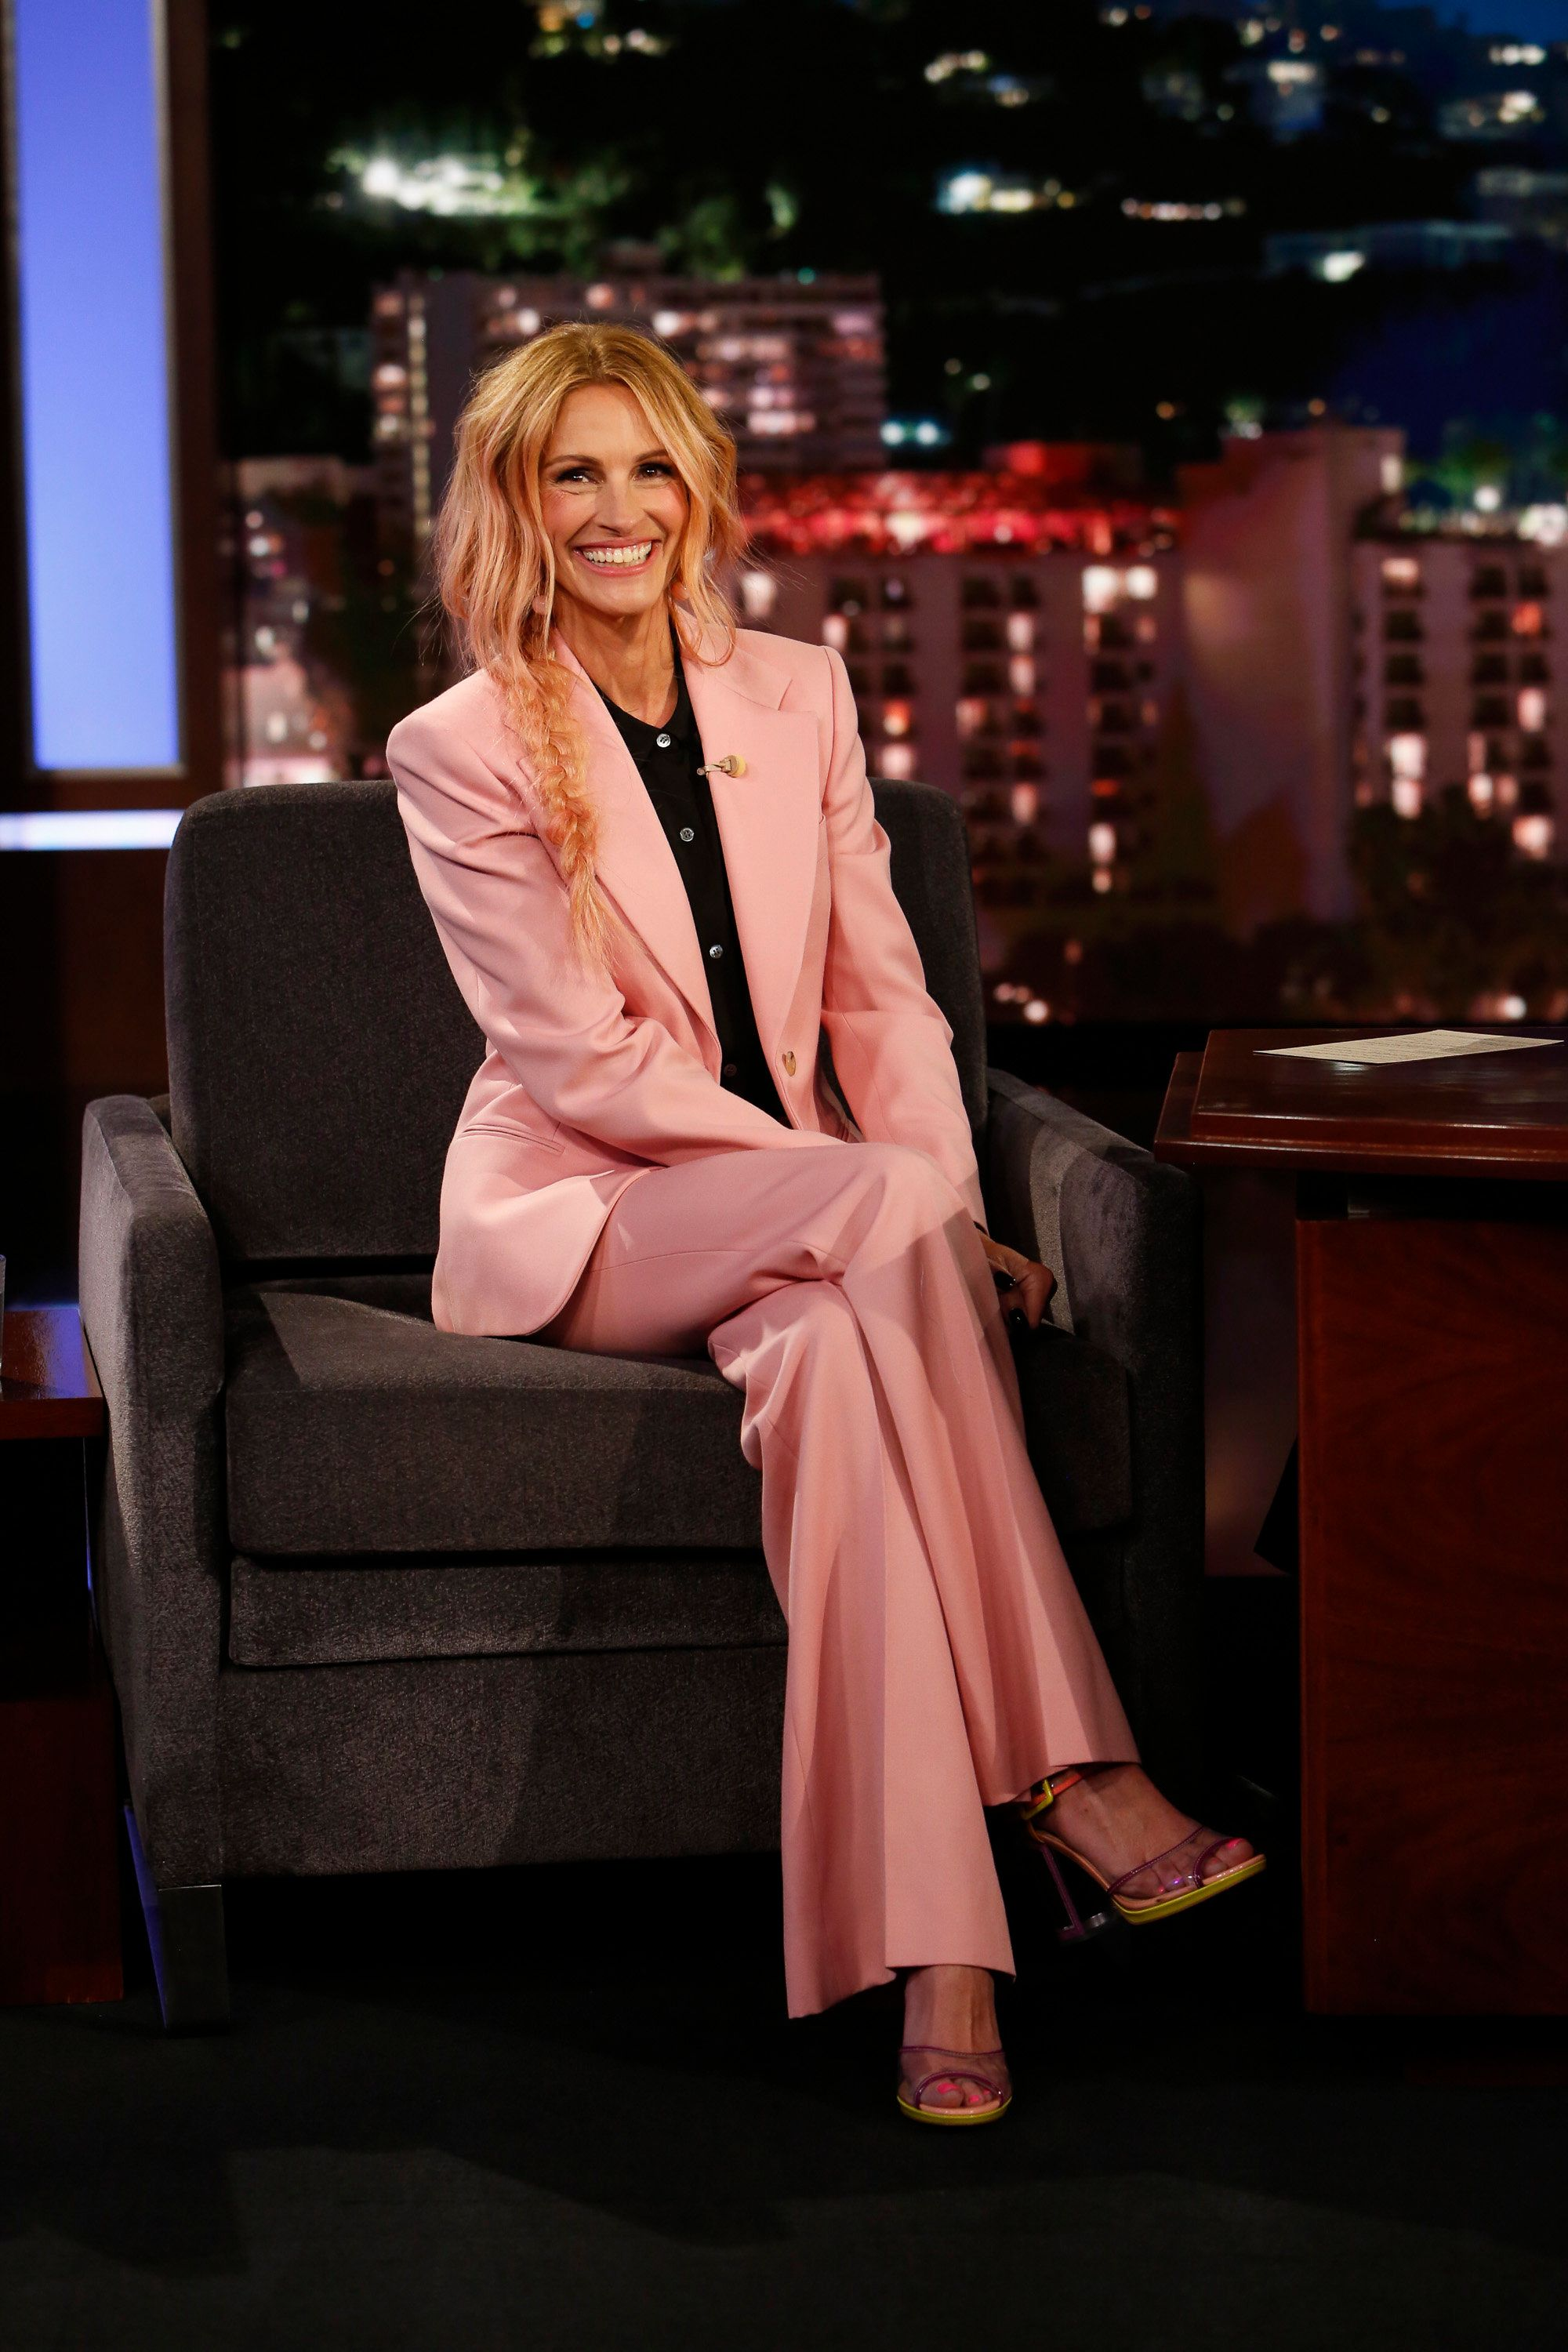 JIMMY KIMMEL LIVE! - 'Jimmy Kimmel Live!' airs every weeknight at 11:35 p.m. EDT and features a diverse lineup of guests that include celebrities, athletes, musical acts, comedians and human interest subjects, along with comedy bits and a house band. The guests for Thursday, November 1 included Julia Roberts ('Homecoming'), Science Bob, and musical guest Tenacious D. (Randy Holmes via Getty Images) JULIA ROBERTS